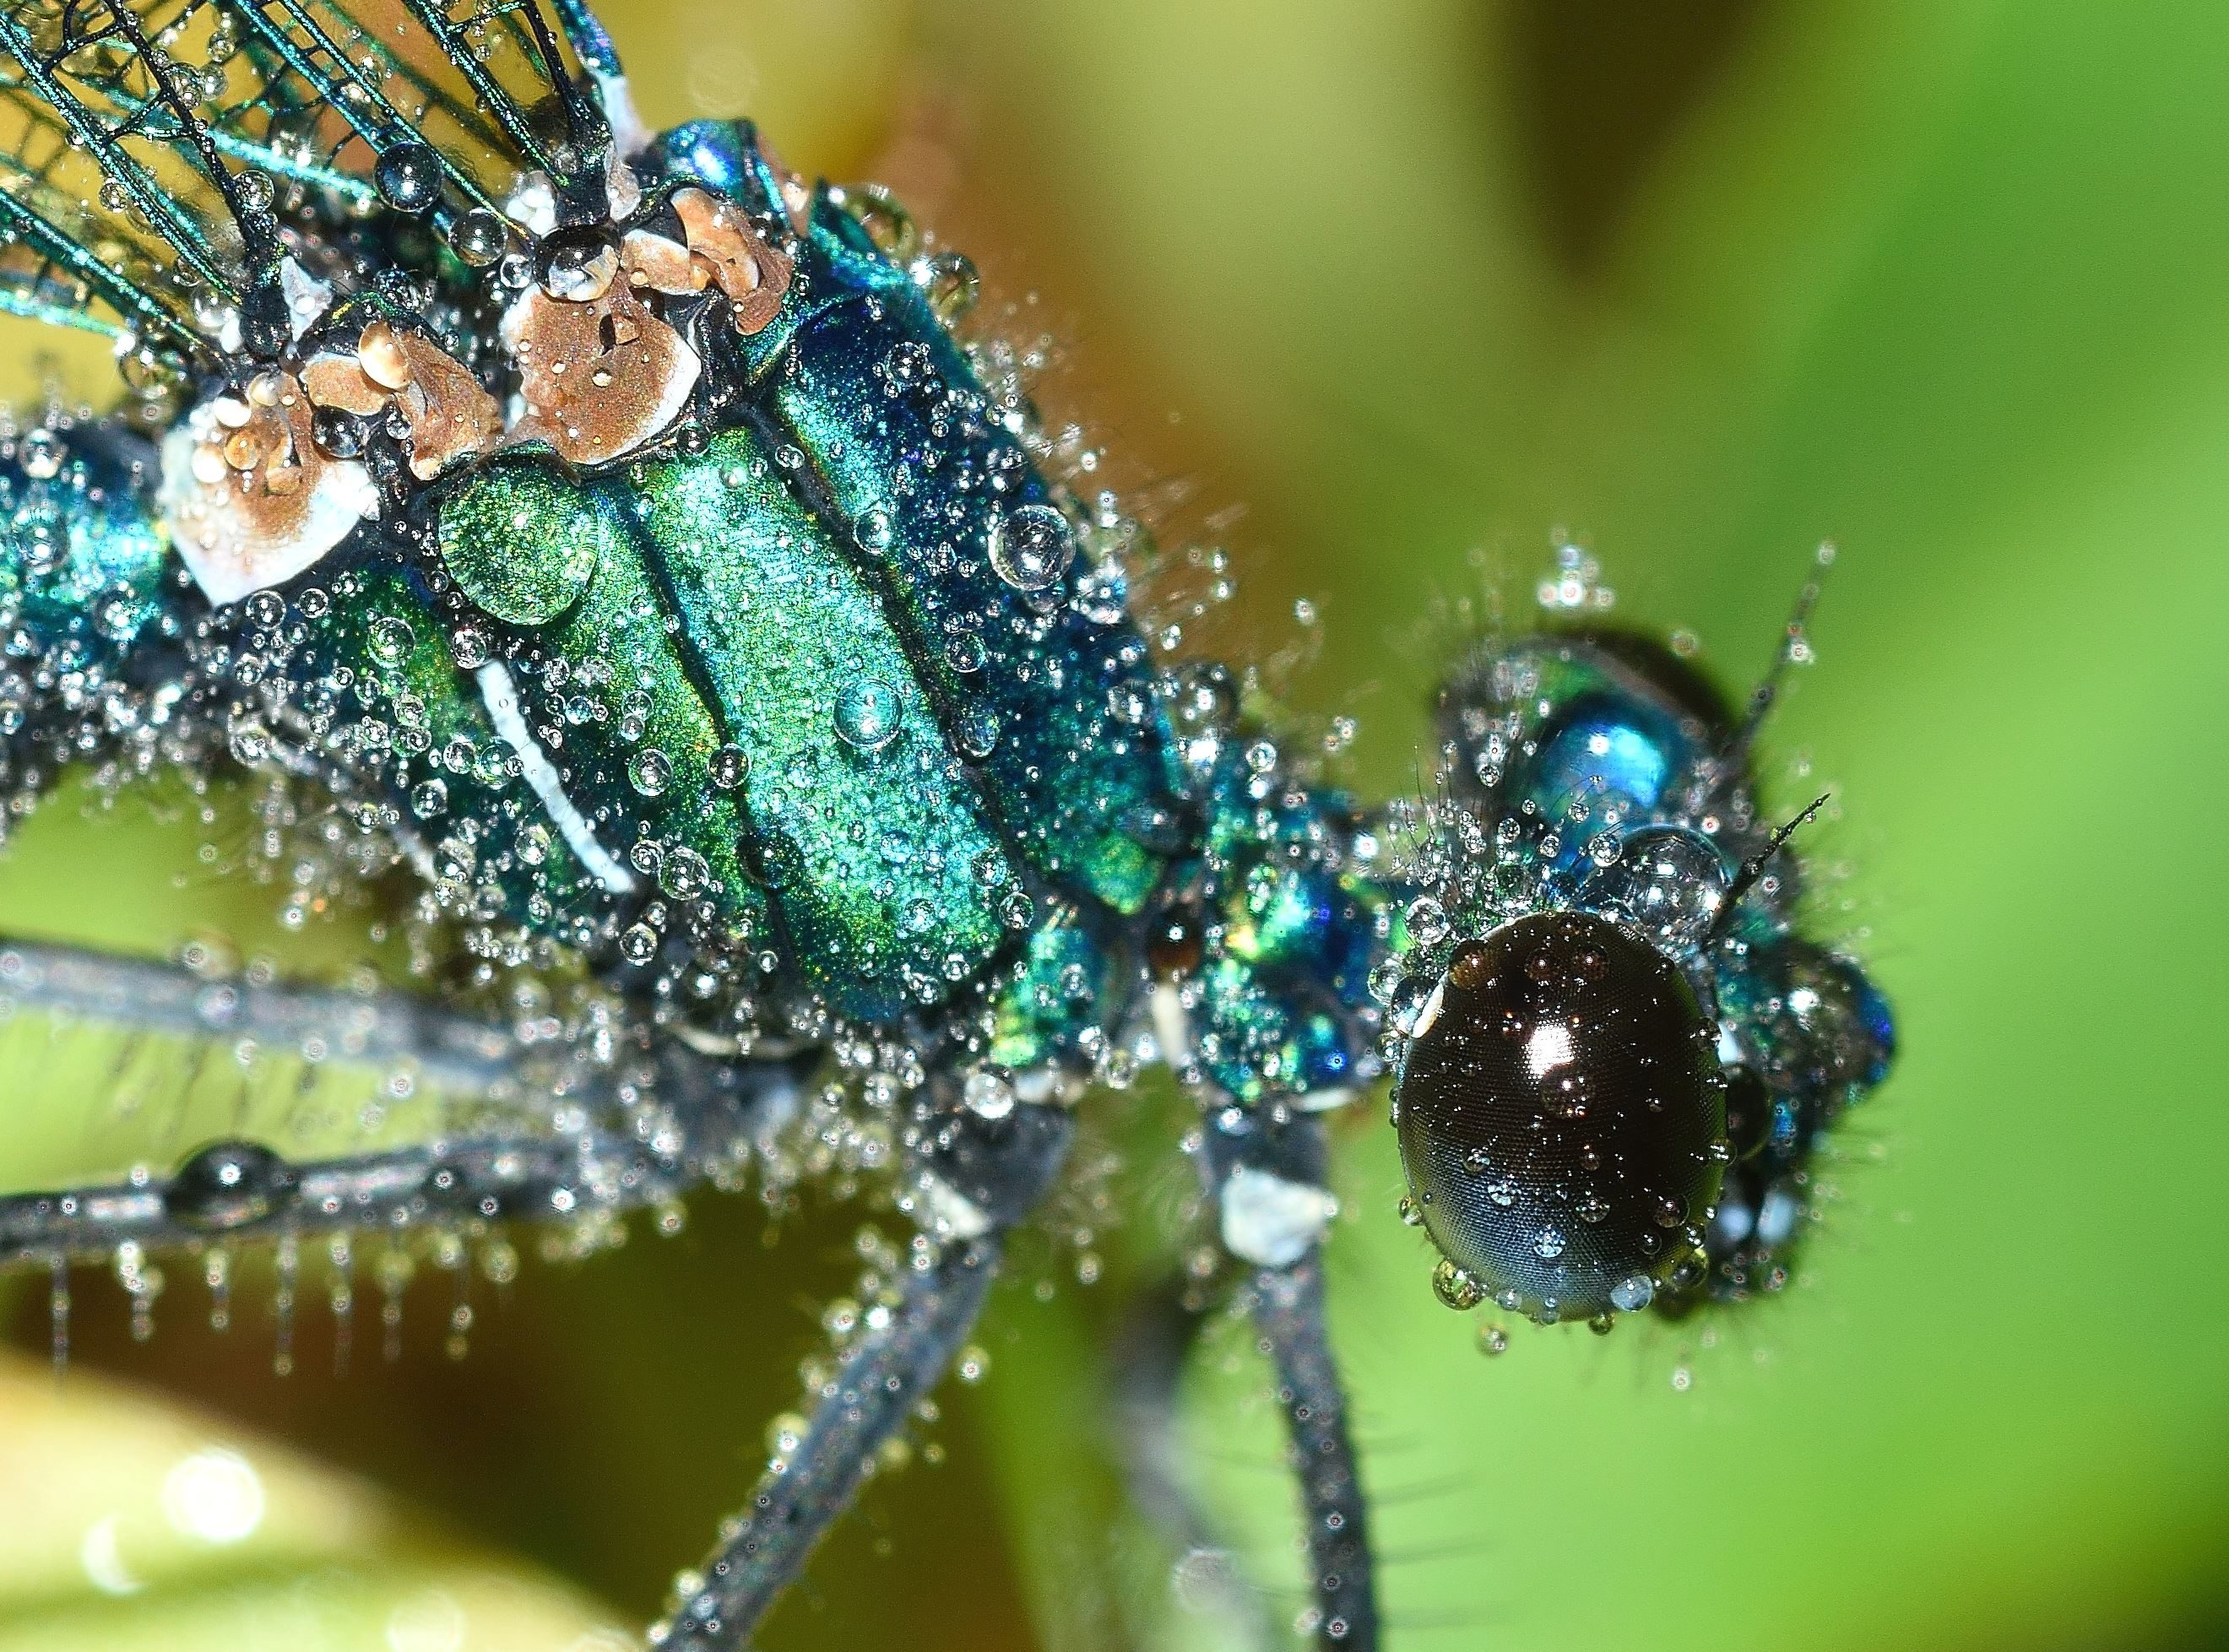 Super Hd Wallpapers Free Picture Insect Bugs Invertebrate Macro Dew